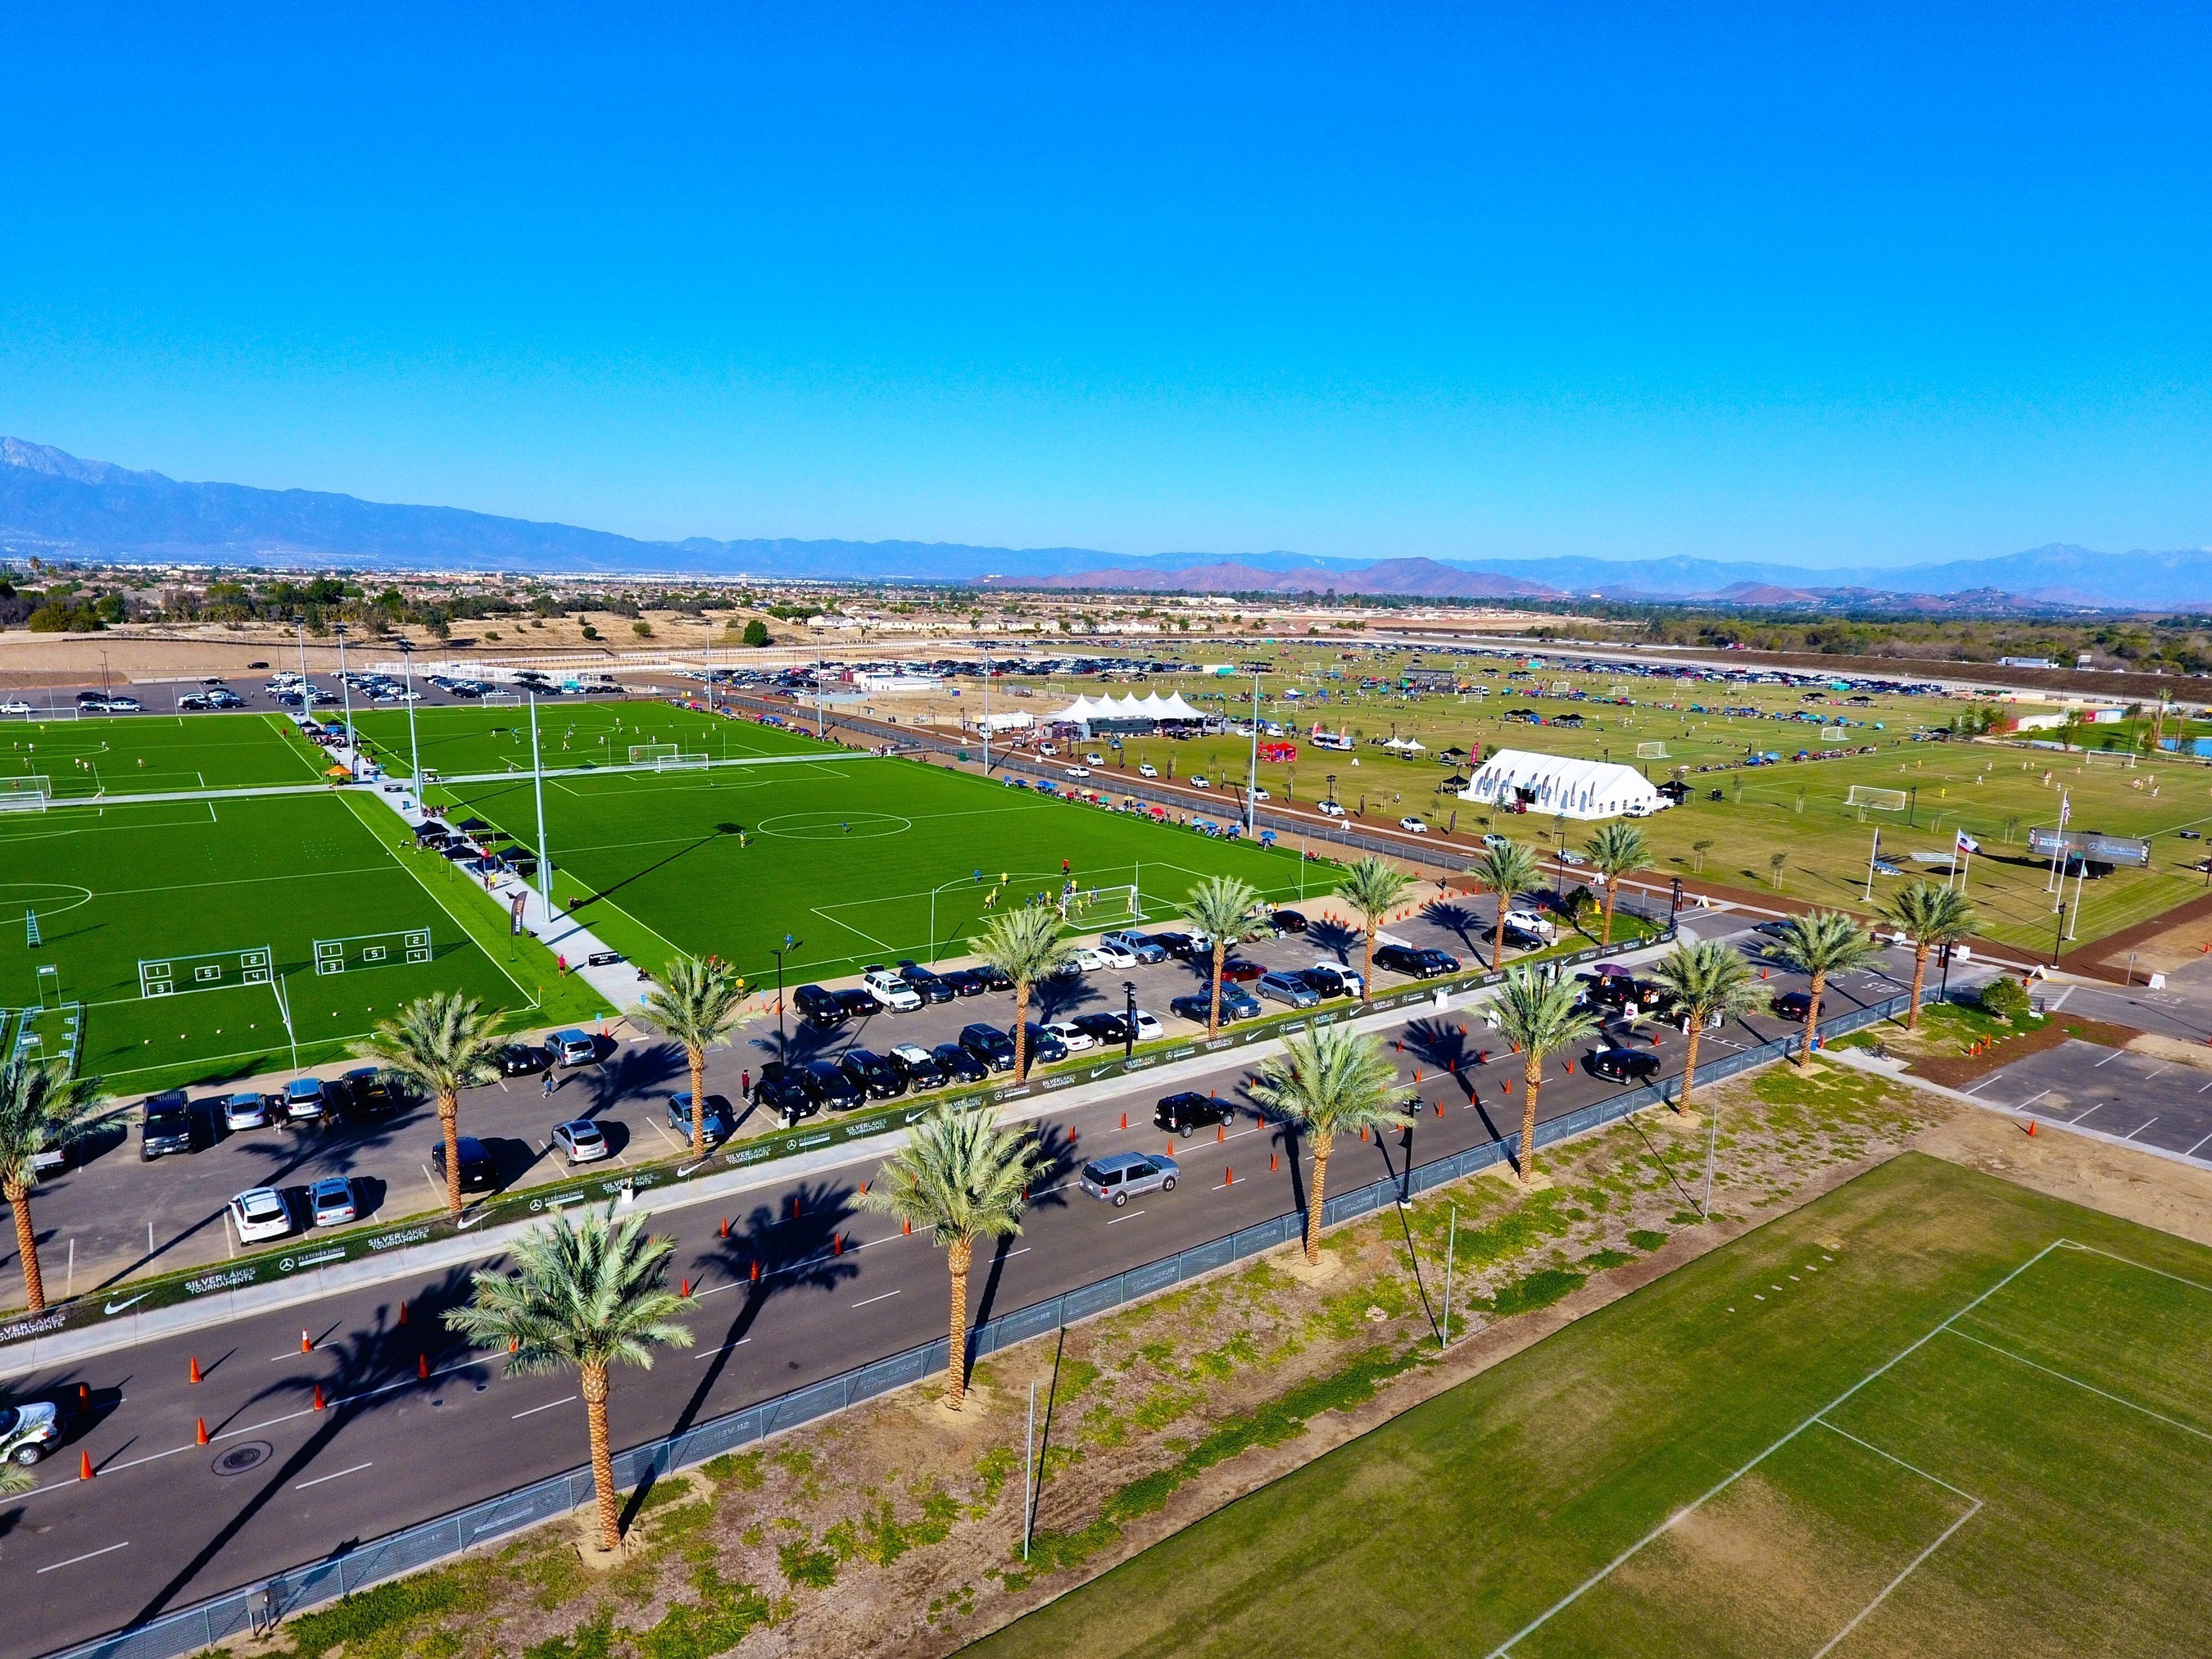 SilverLakes is one of the largest soccer, equestrian and entertainment complexes in the United States.  SilverLakes encompasses 130 acres in Norco, California. The state-of-the facility has 24 full size soccer fields, a concert & events center, five horse arenas and has hosted more than 750K athletes and enthusiasts in its first year of operation.  SilverLakes mission is to help children and families realize their full athletic potential while creating a needed family friendly venue and gathering place for the local communities it serves.  This was the home to the first annual SilverLakes College.